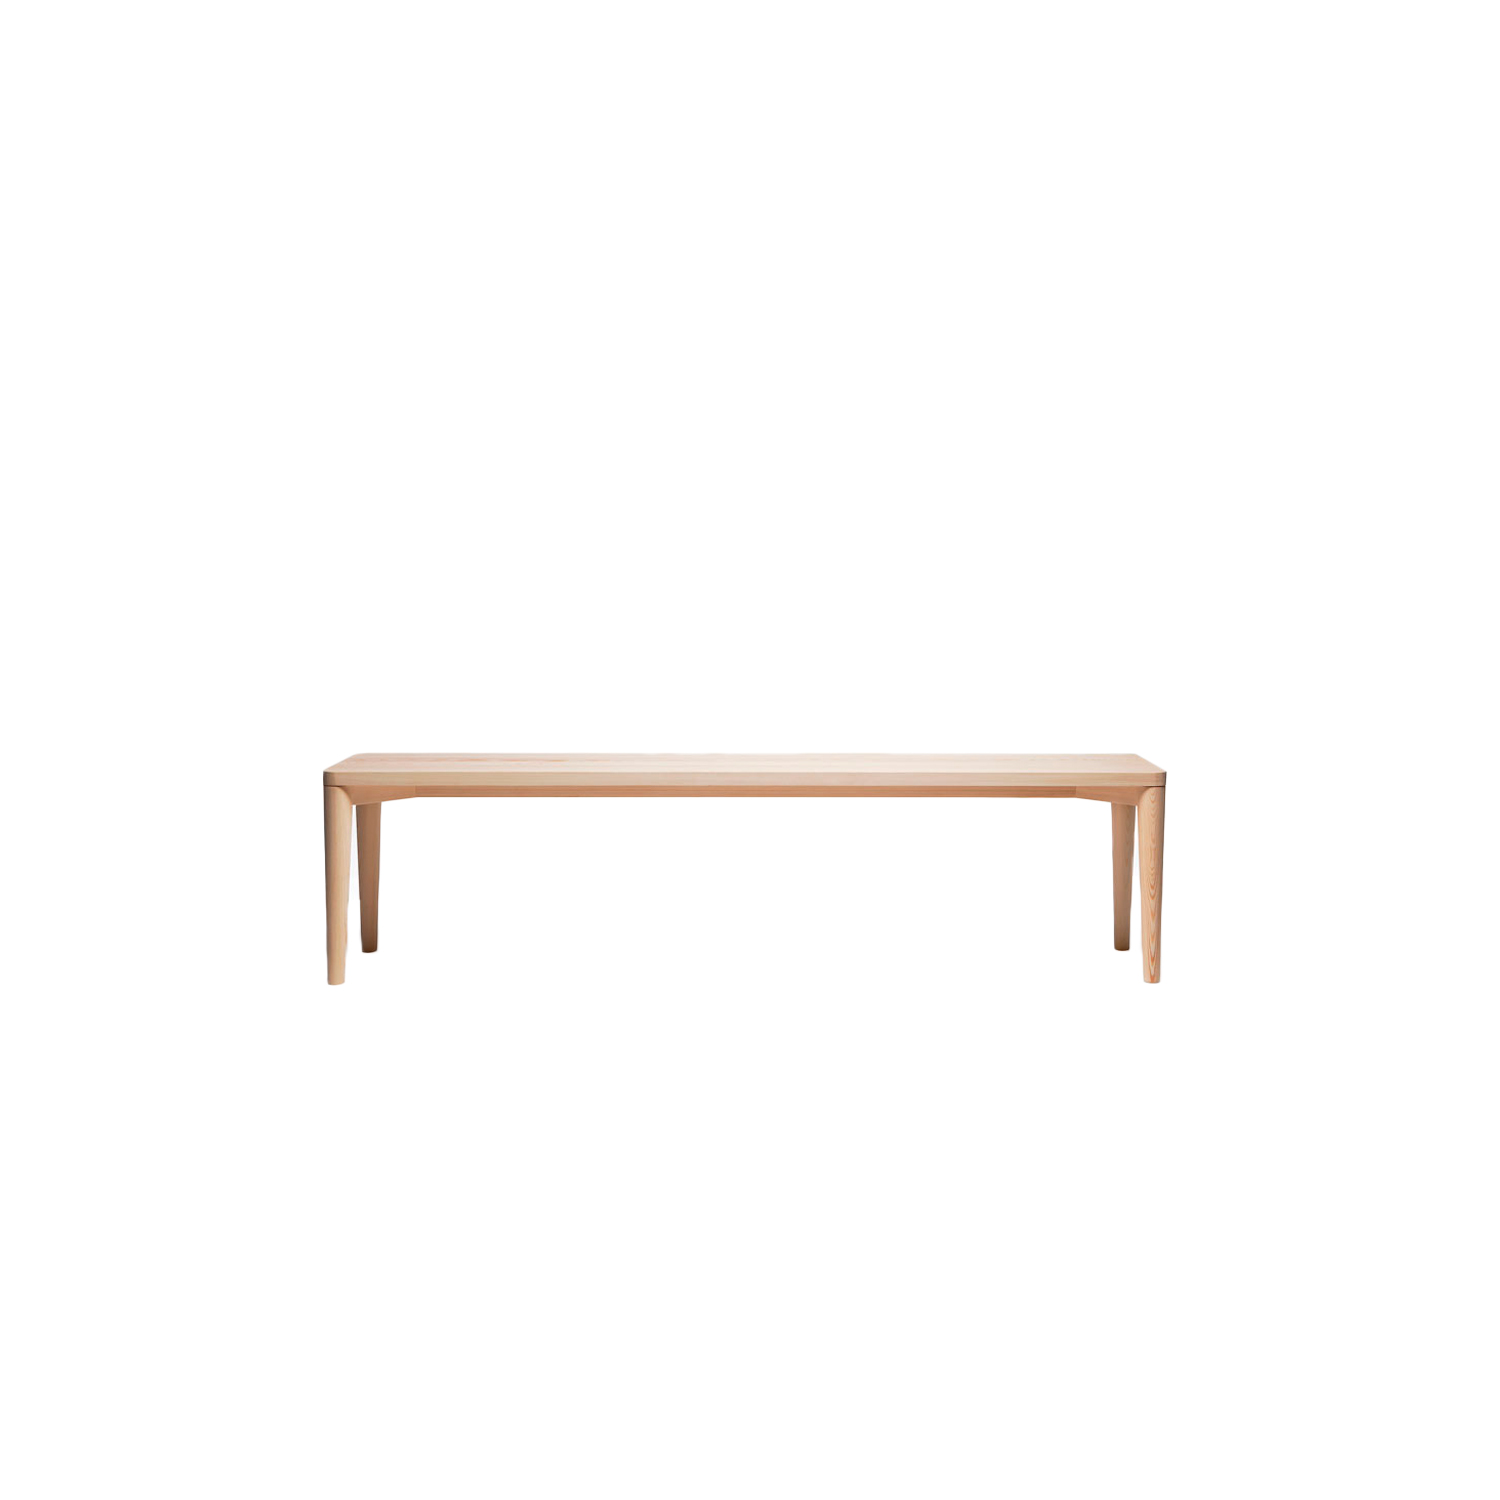 January Bench - The simple, understated forms of the January bench bring out the beautiful, unique solid wooden surface. January bench is available in ash with an oiled finish. Nikari's wooden furniture is treated with natural surface treatment materials, such as natural wood oil mixture.   | Matter of Stuff